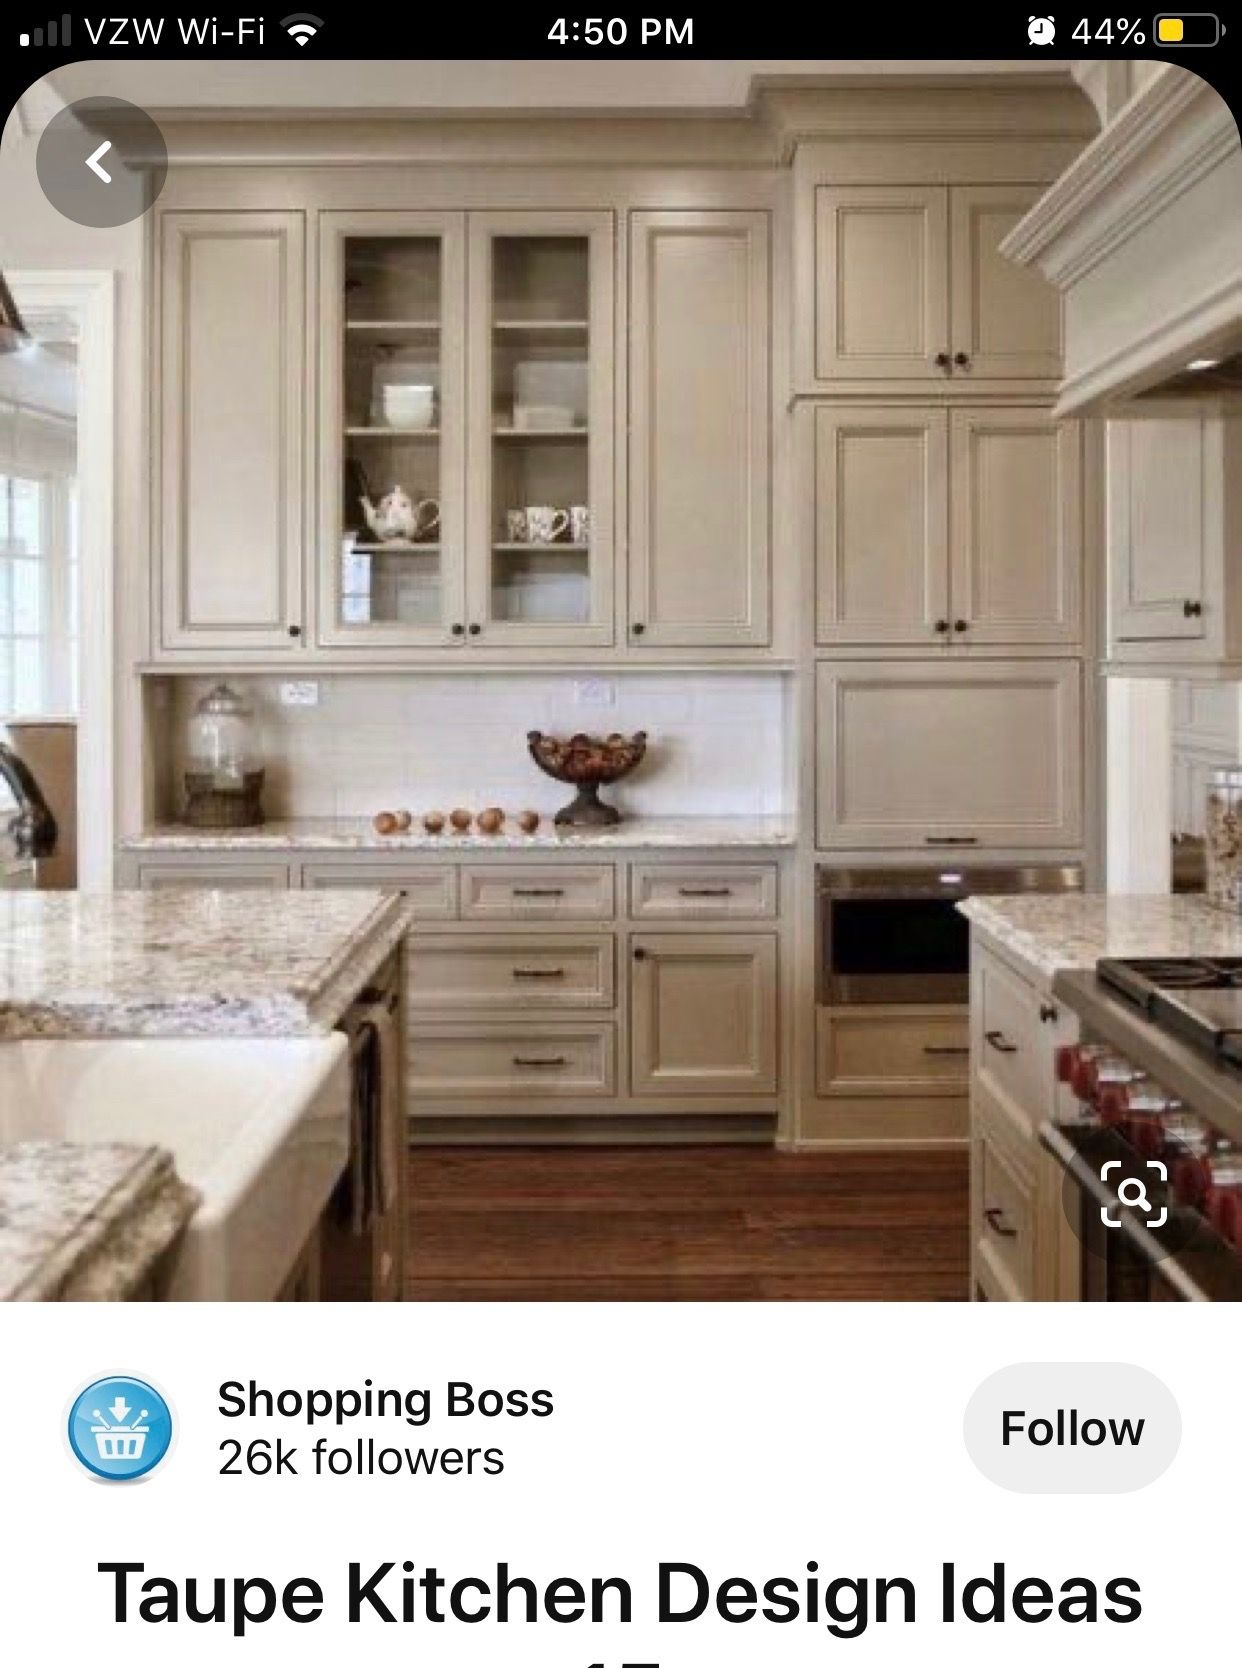 Pin By Patty Stutz On Remodel In 2020 Taupe Kitchen Cabinets Beige Kitchen Kitchen Cabinet Inspiration